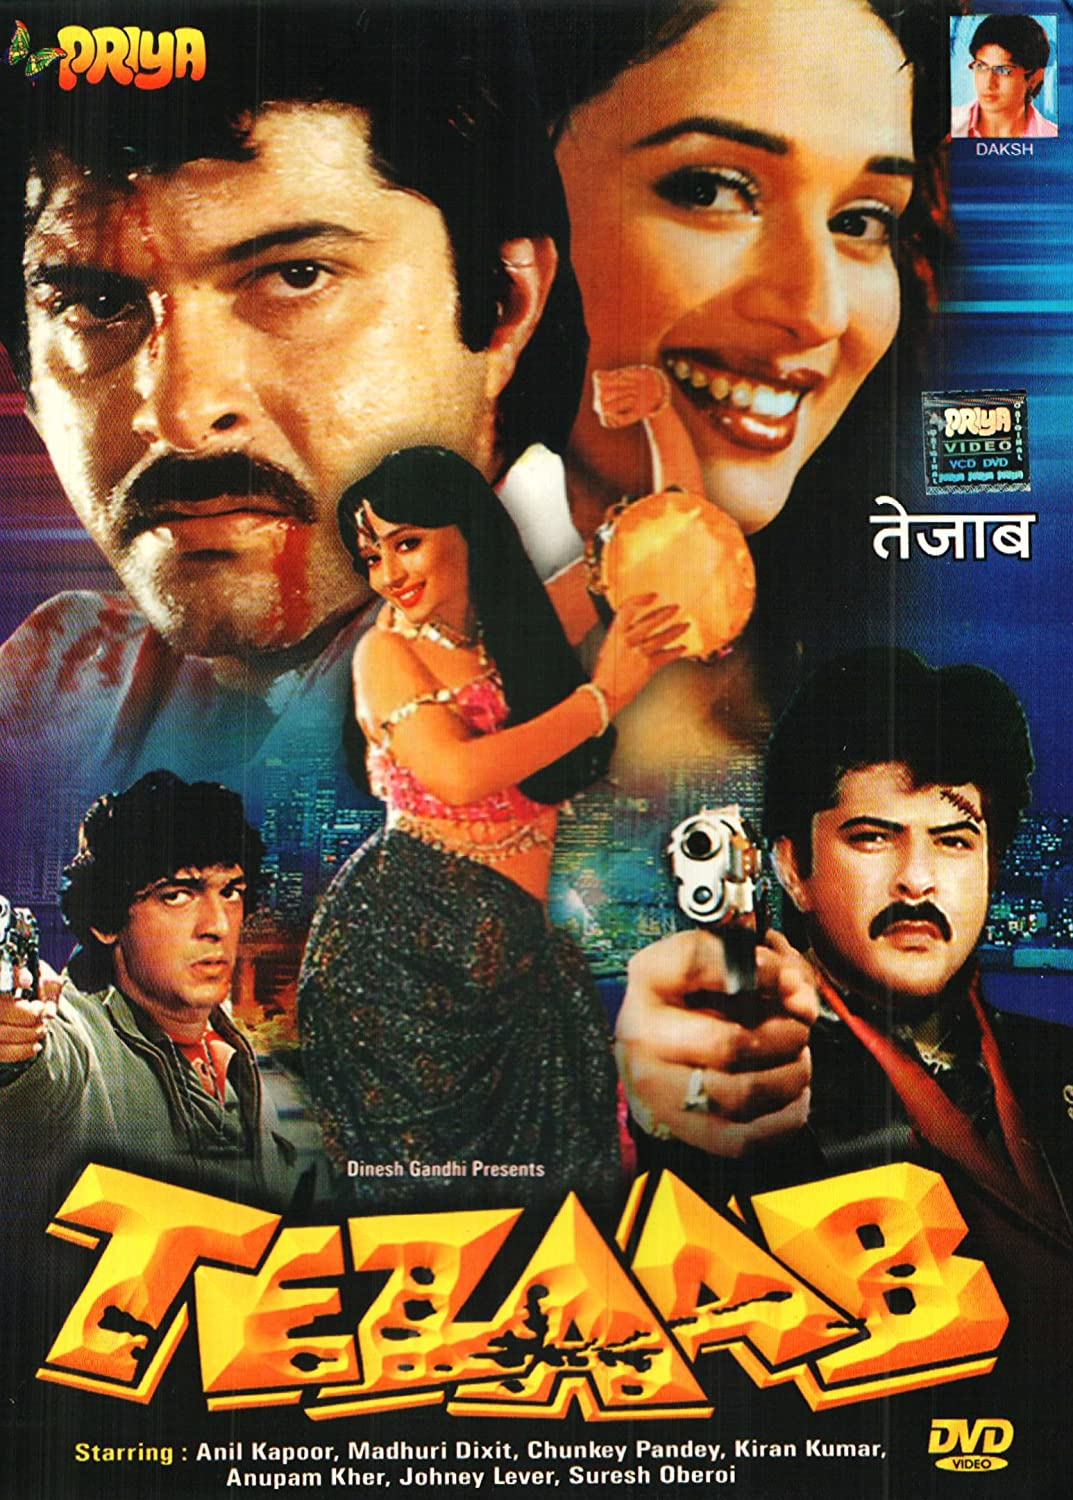 Amazon.in: Buy Tezaab DVD, Blu-ray Online at Best Prices in India ...